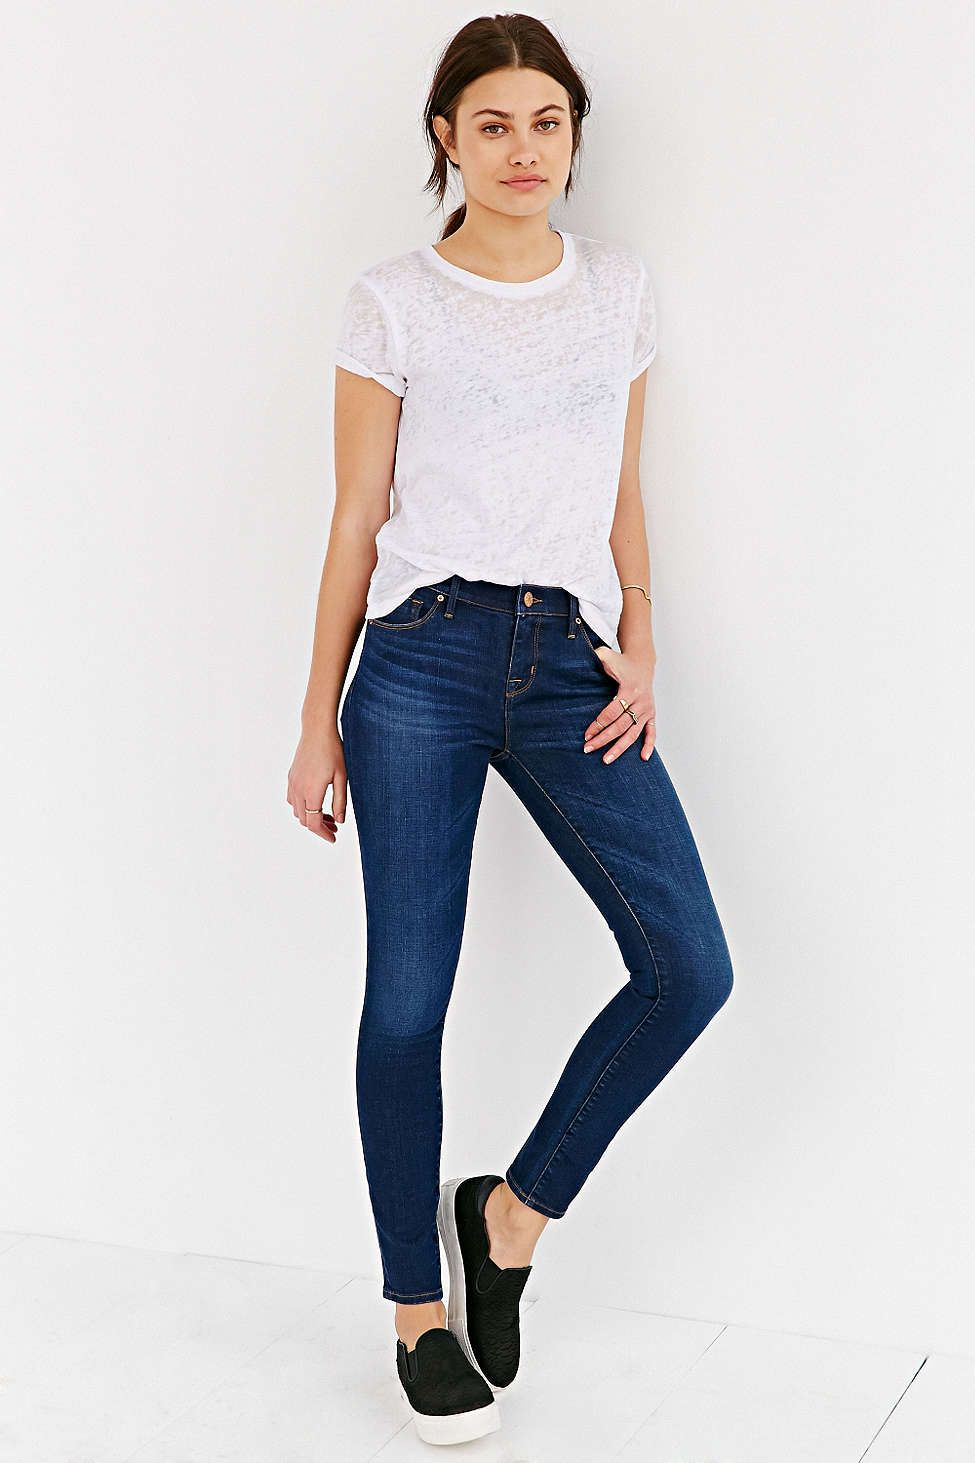 White t shirt deep blue jeans black and white Black shirt blue jeans